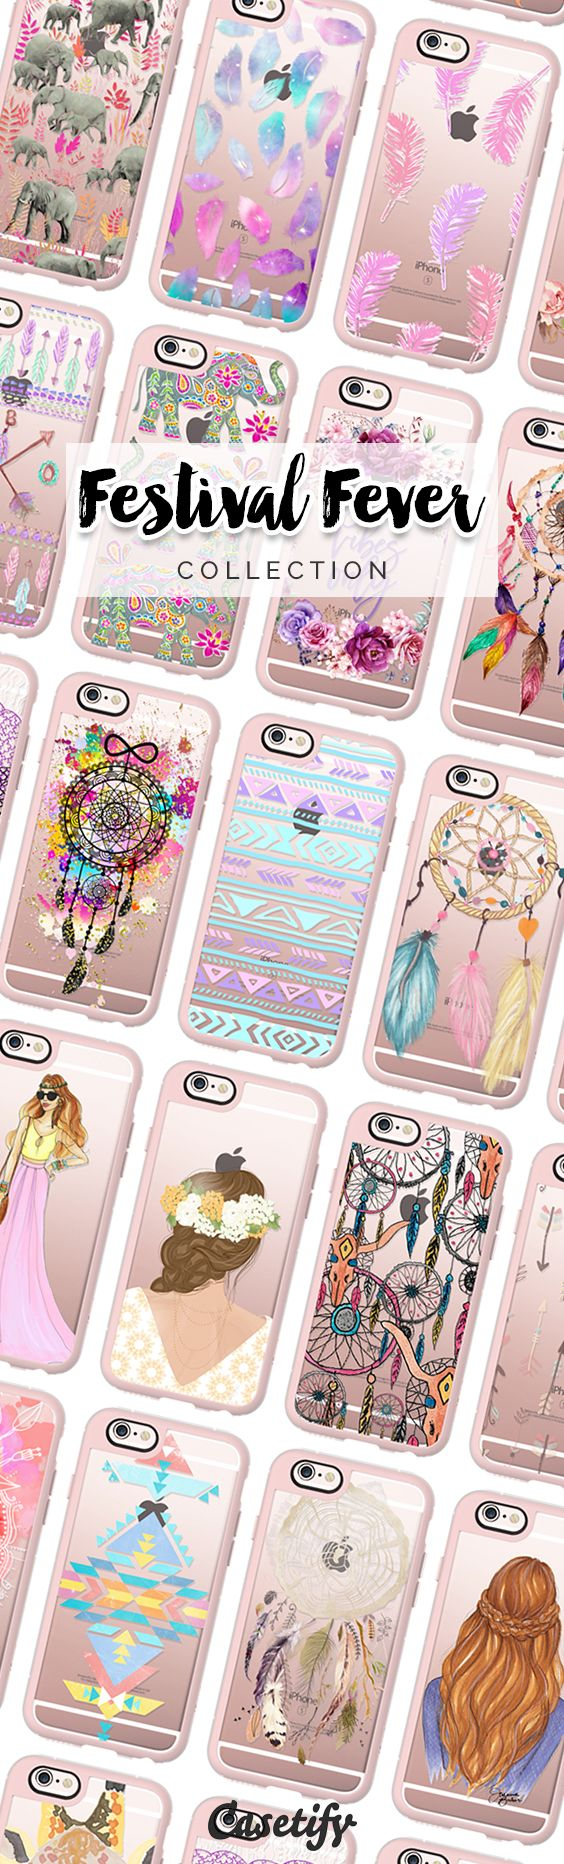 Life is a festival to those who live with enthusiasm. Check out our Festival Fever collection now! https://www.casetify.com/collections/festival_fever#/   @casetify